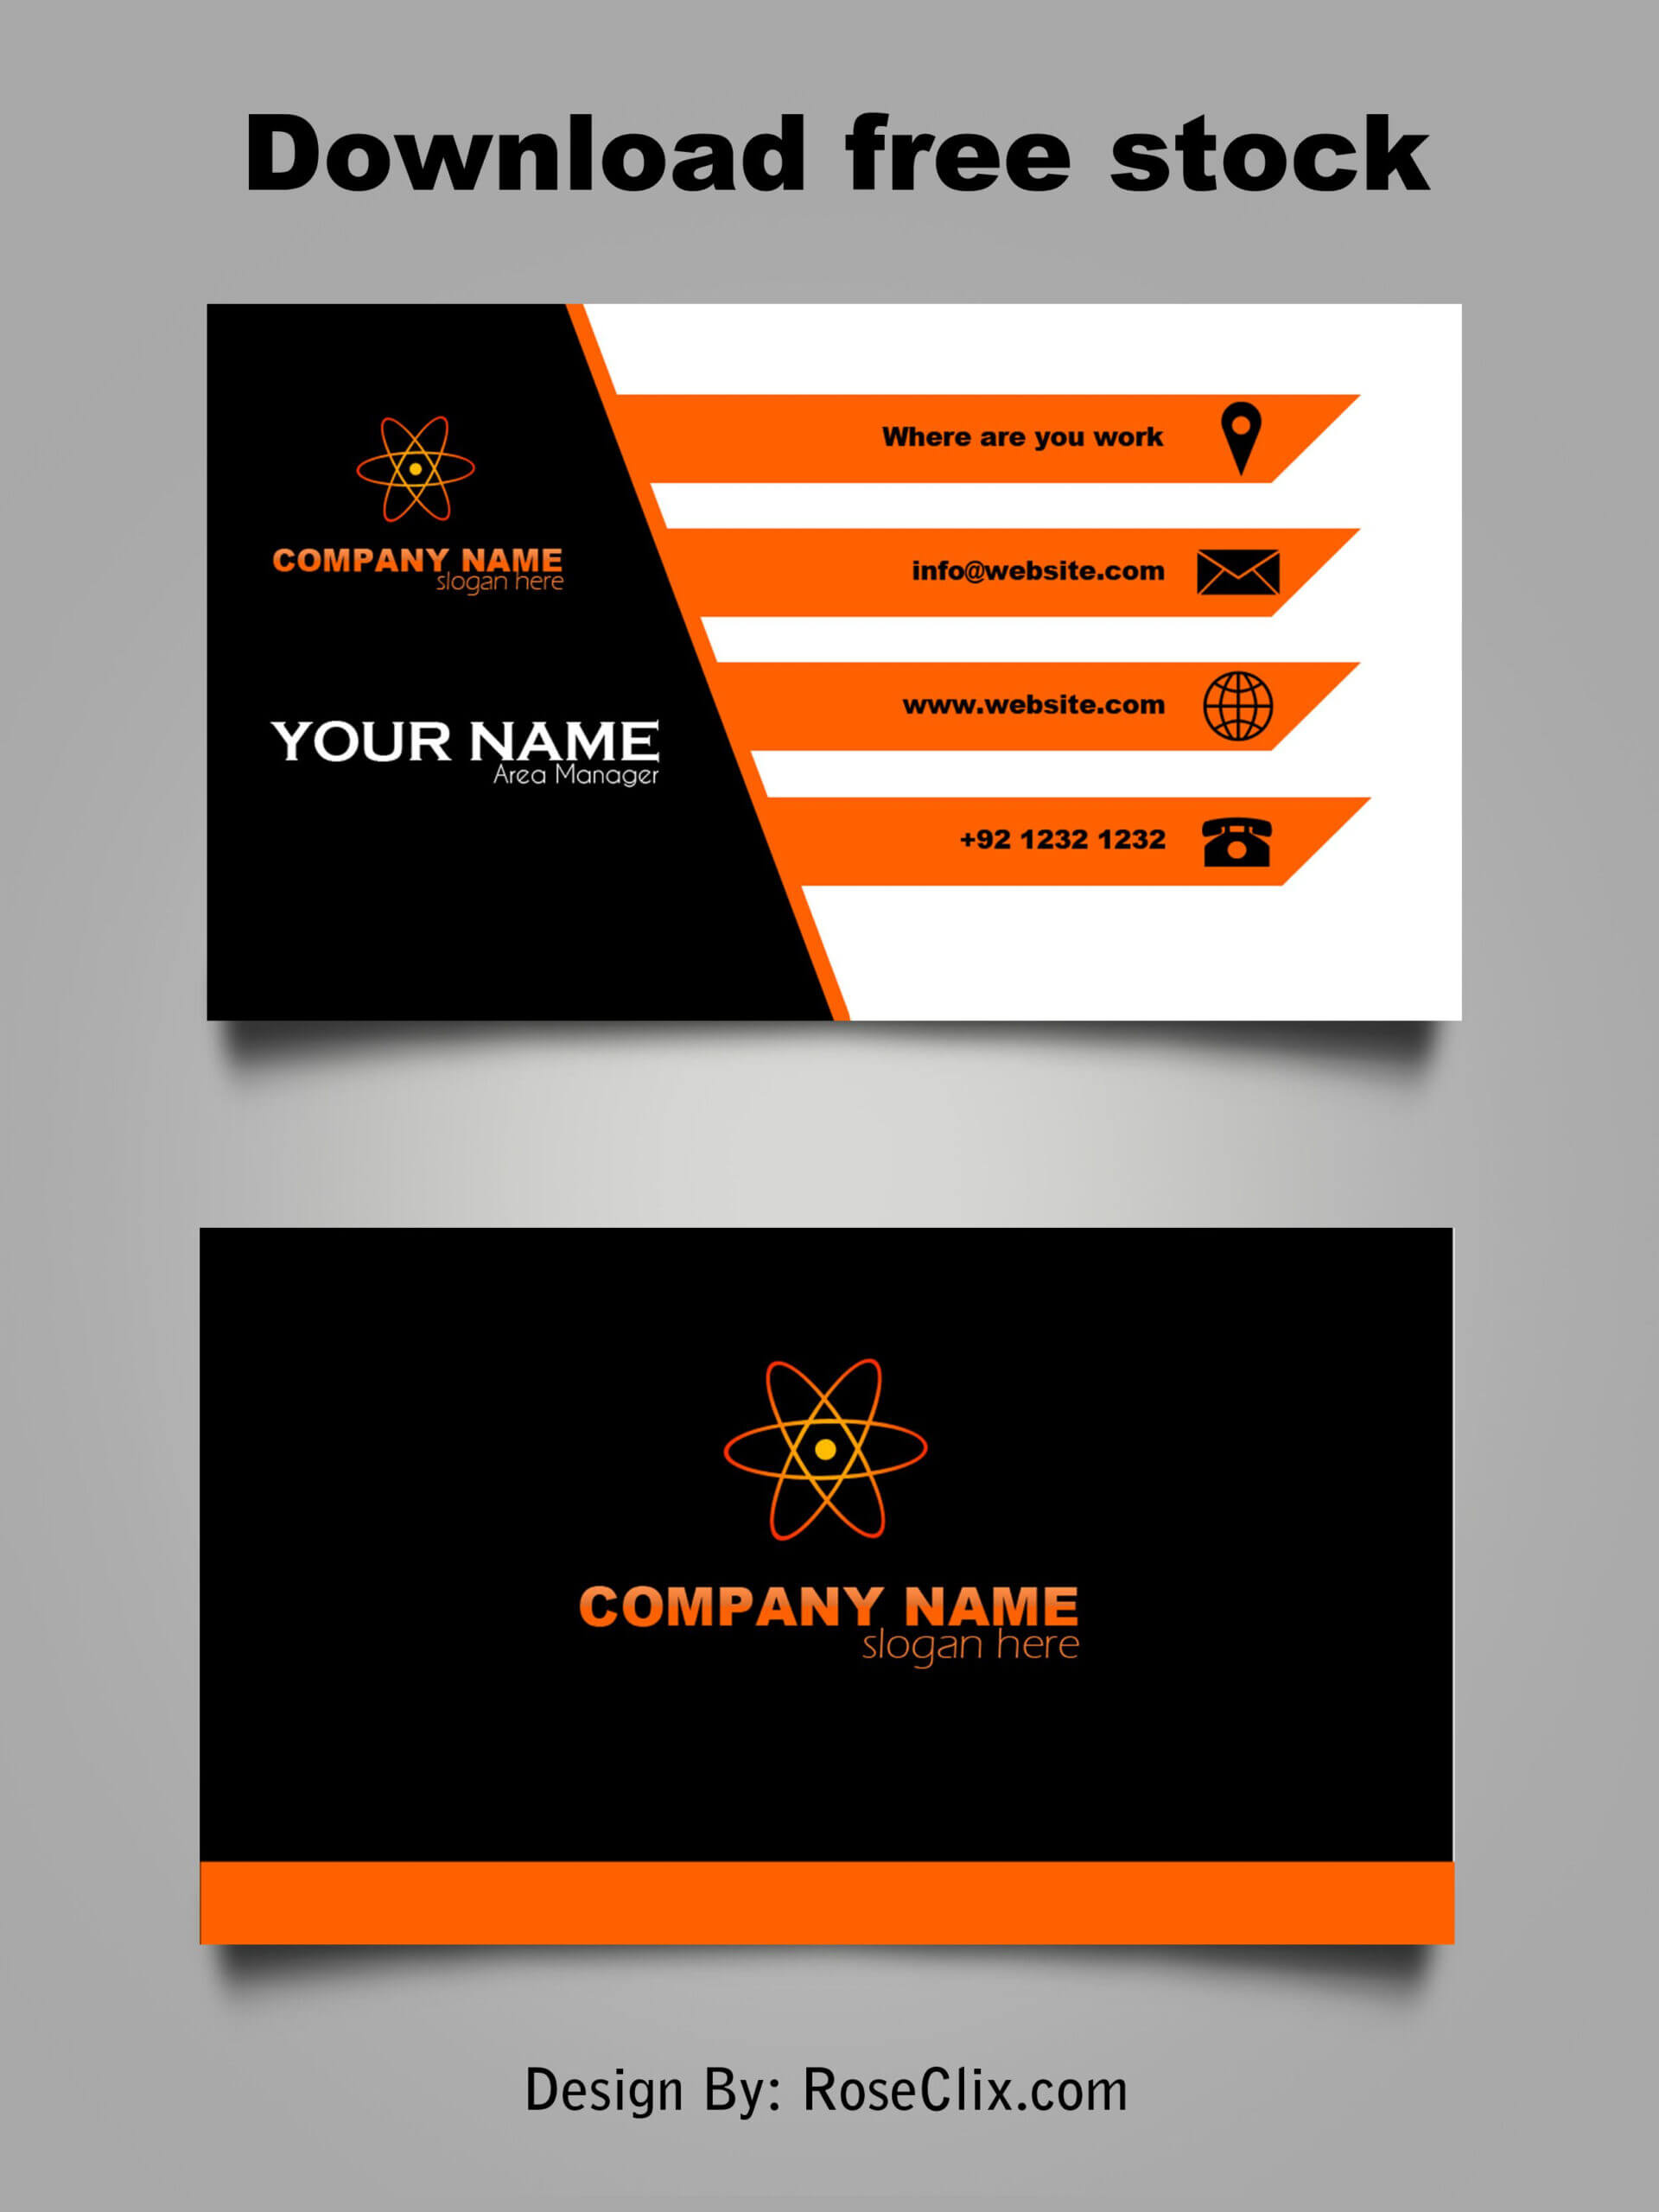 Business Card Template Free Downloads Psd Fils.   Free Regarding Templates For Visiting Cards Free Downloads